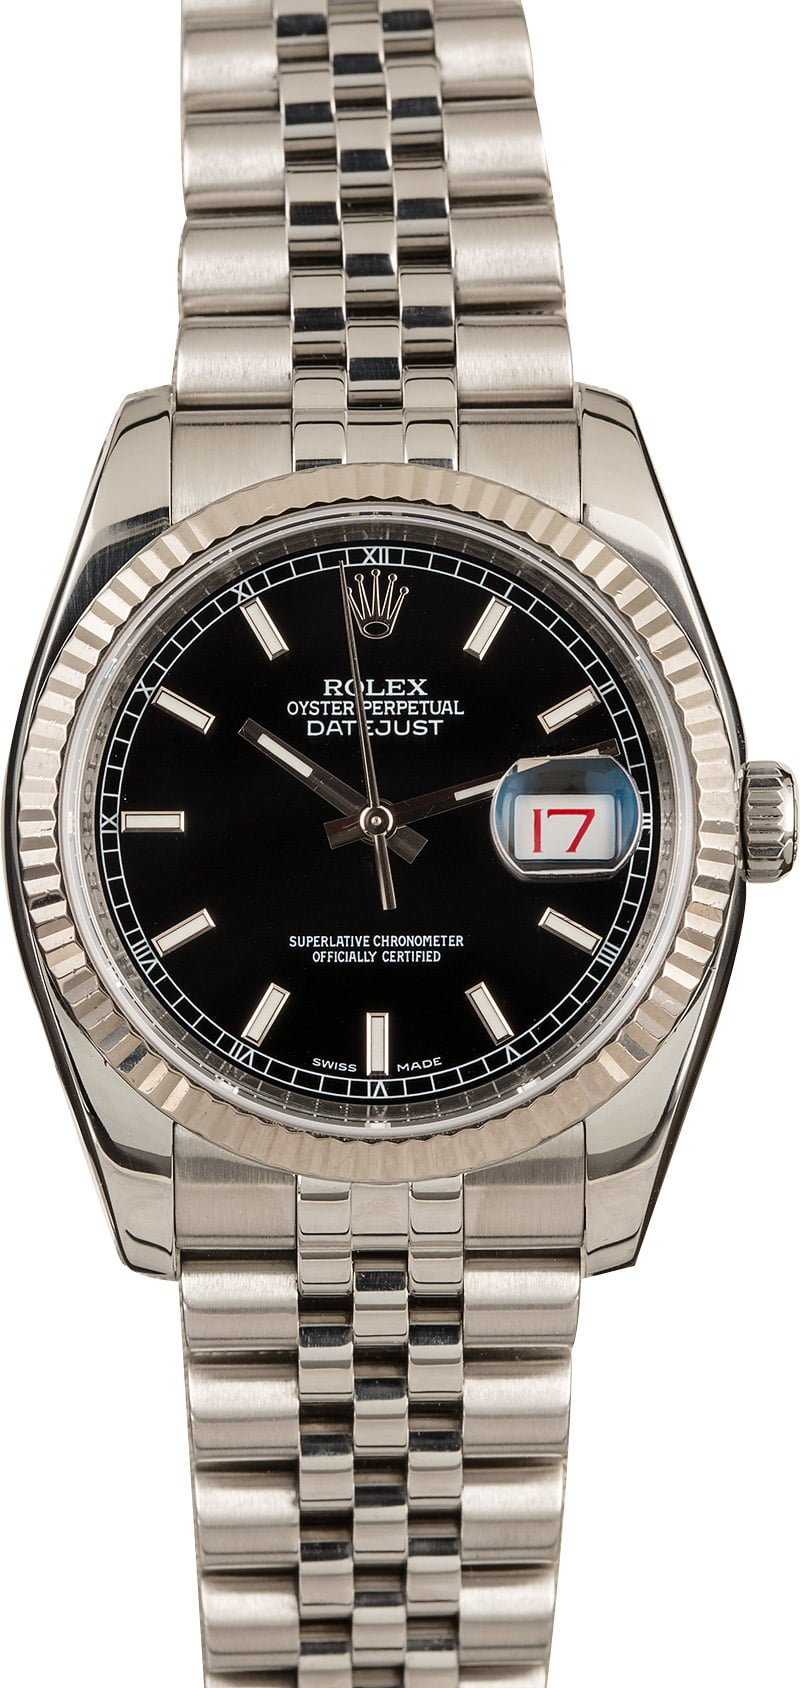 The Best Rolex Watches for Sale Now Datejust 116234 Rolseor Black Dial